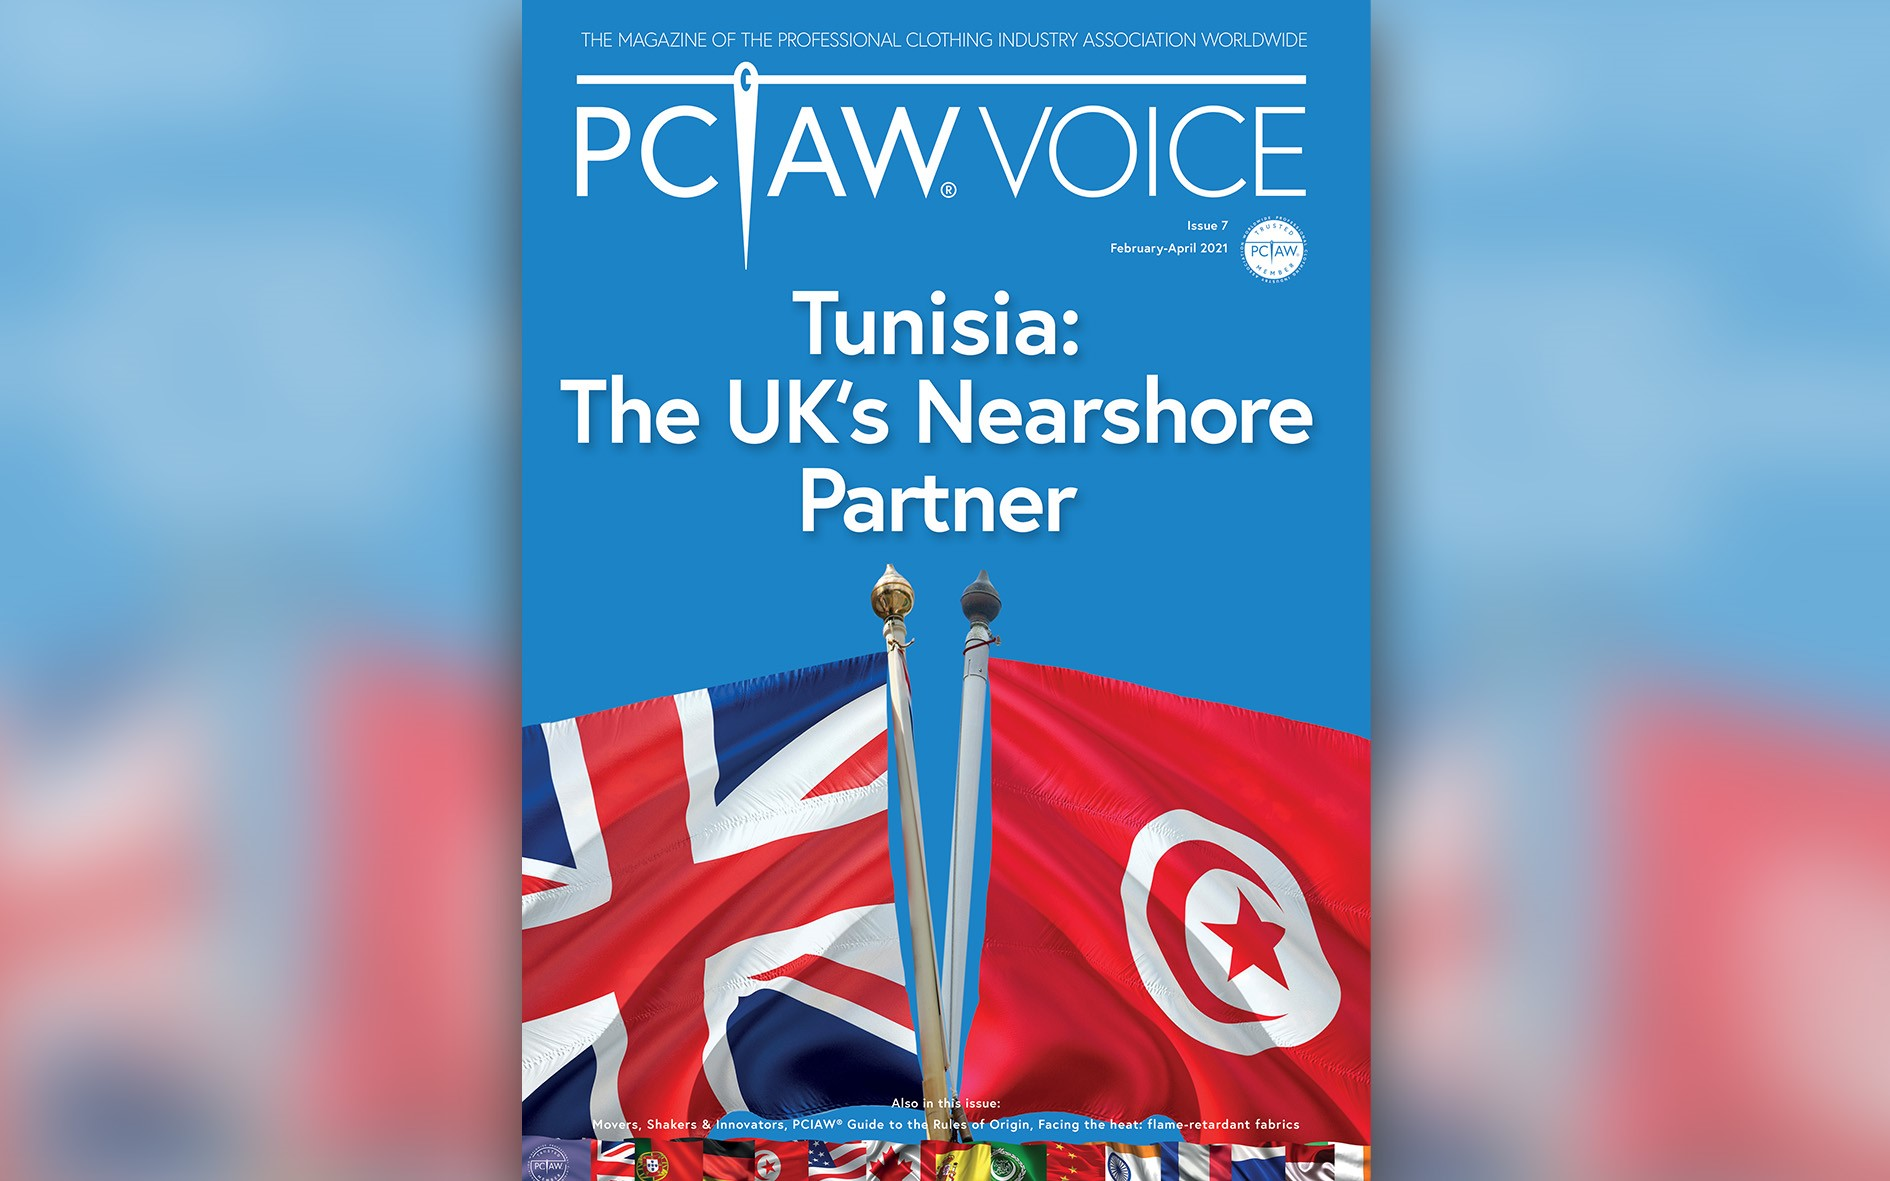 The PCIAW® is pleased to announce that the latest February-April edition of PCIAW®VOICE is out now!